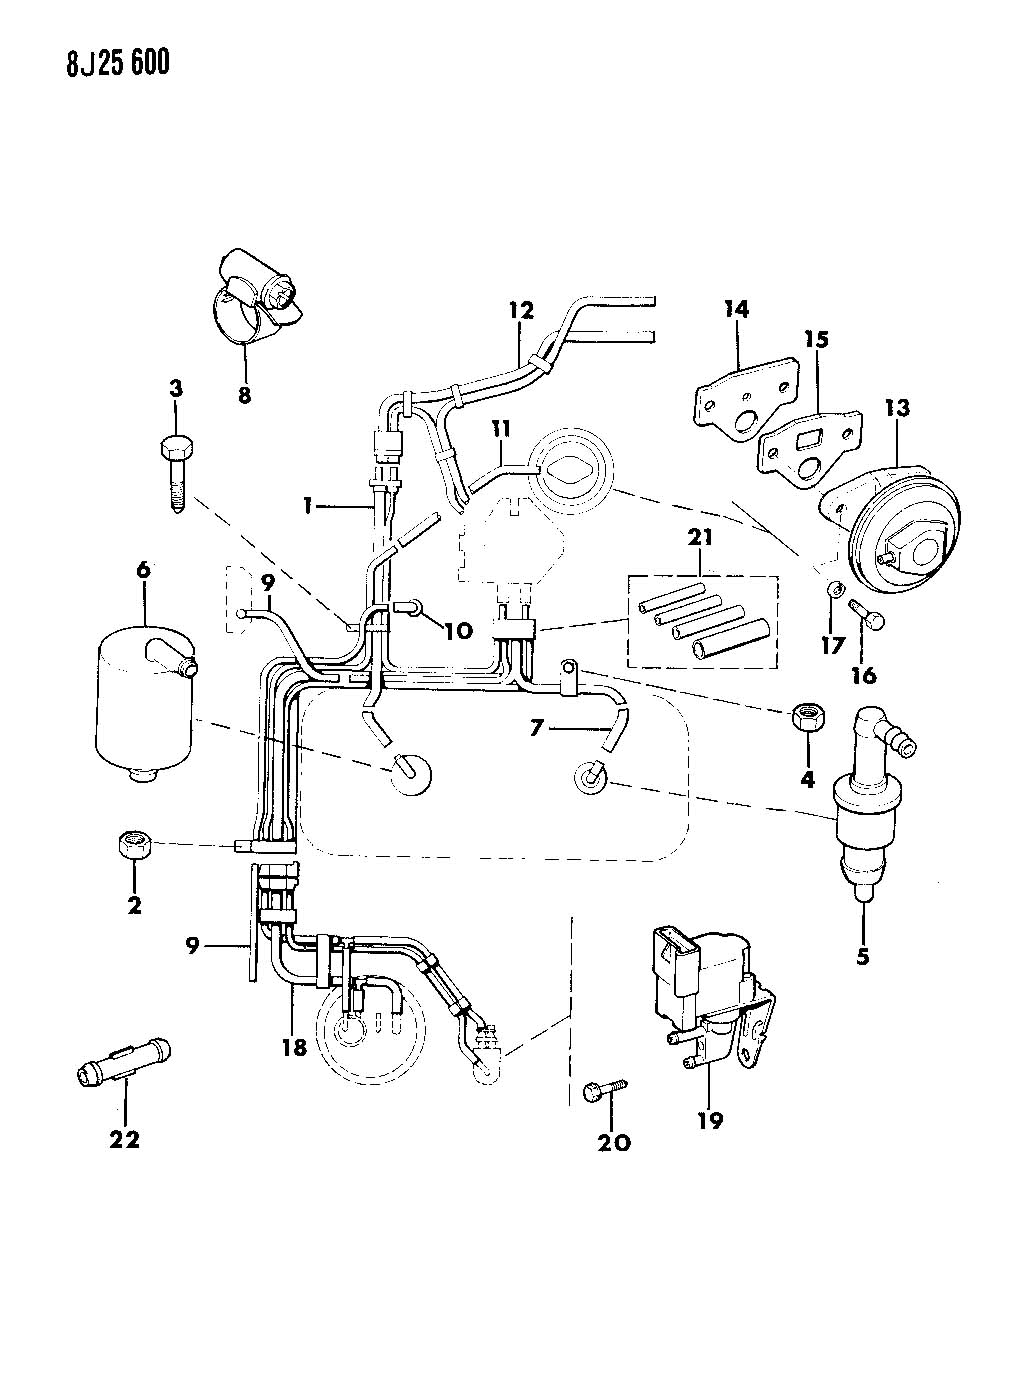 1988 Mazda 626 Engine Diagram Jeep Wrangler Great Design Of Wiring Yj Options